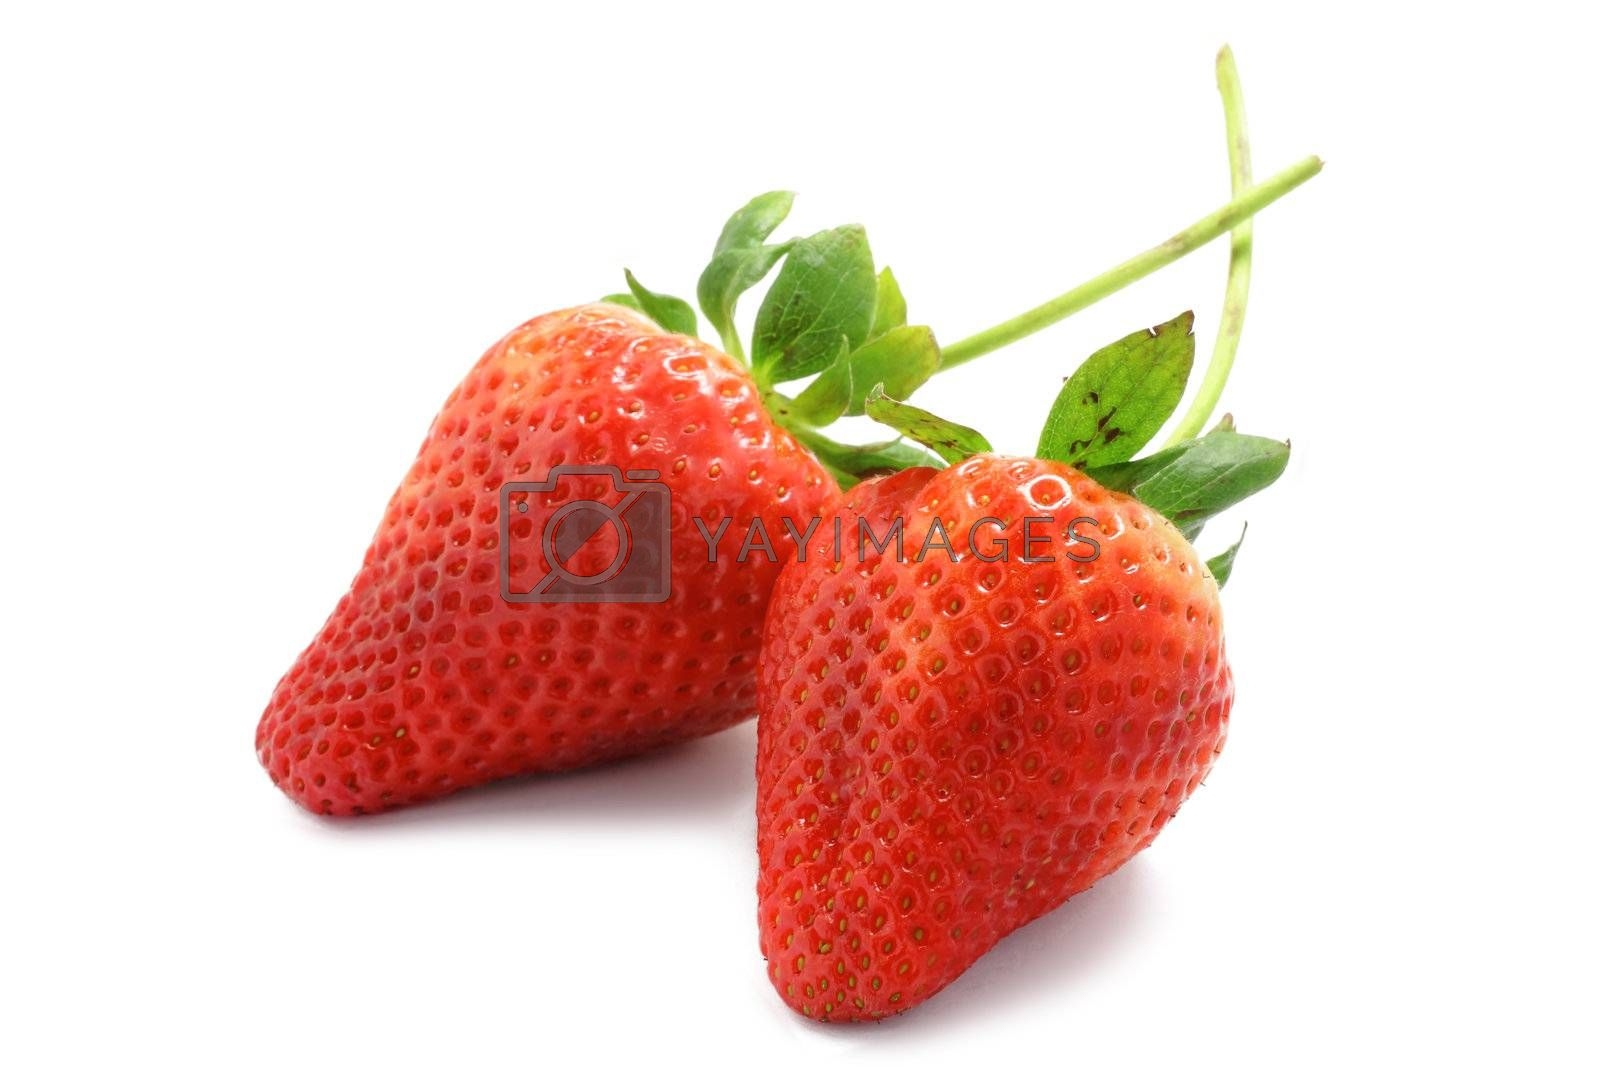 Royalty free image of two strawberries on white background by leungchopan